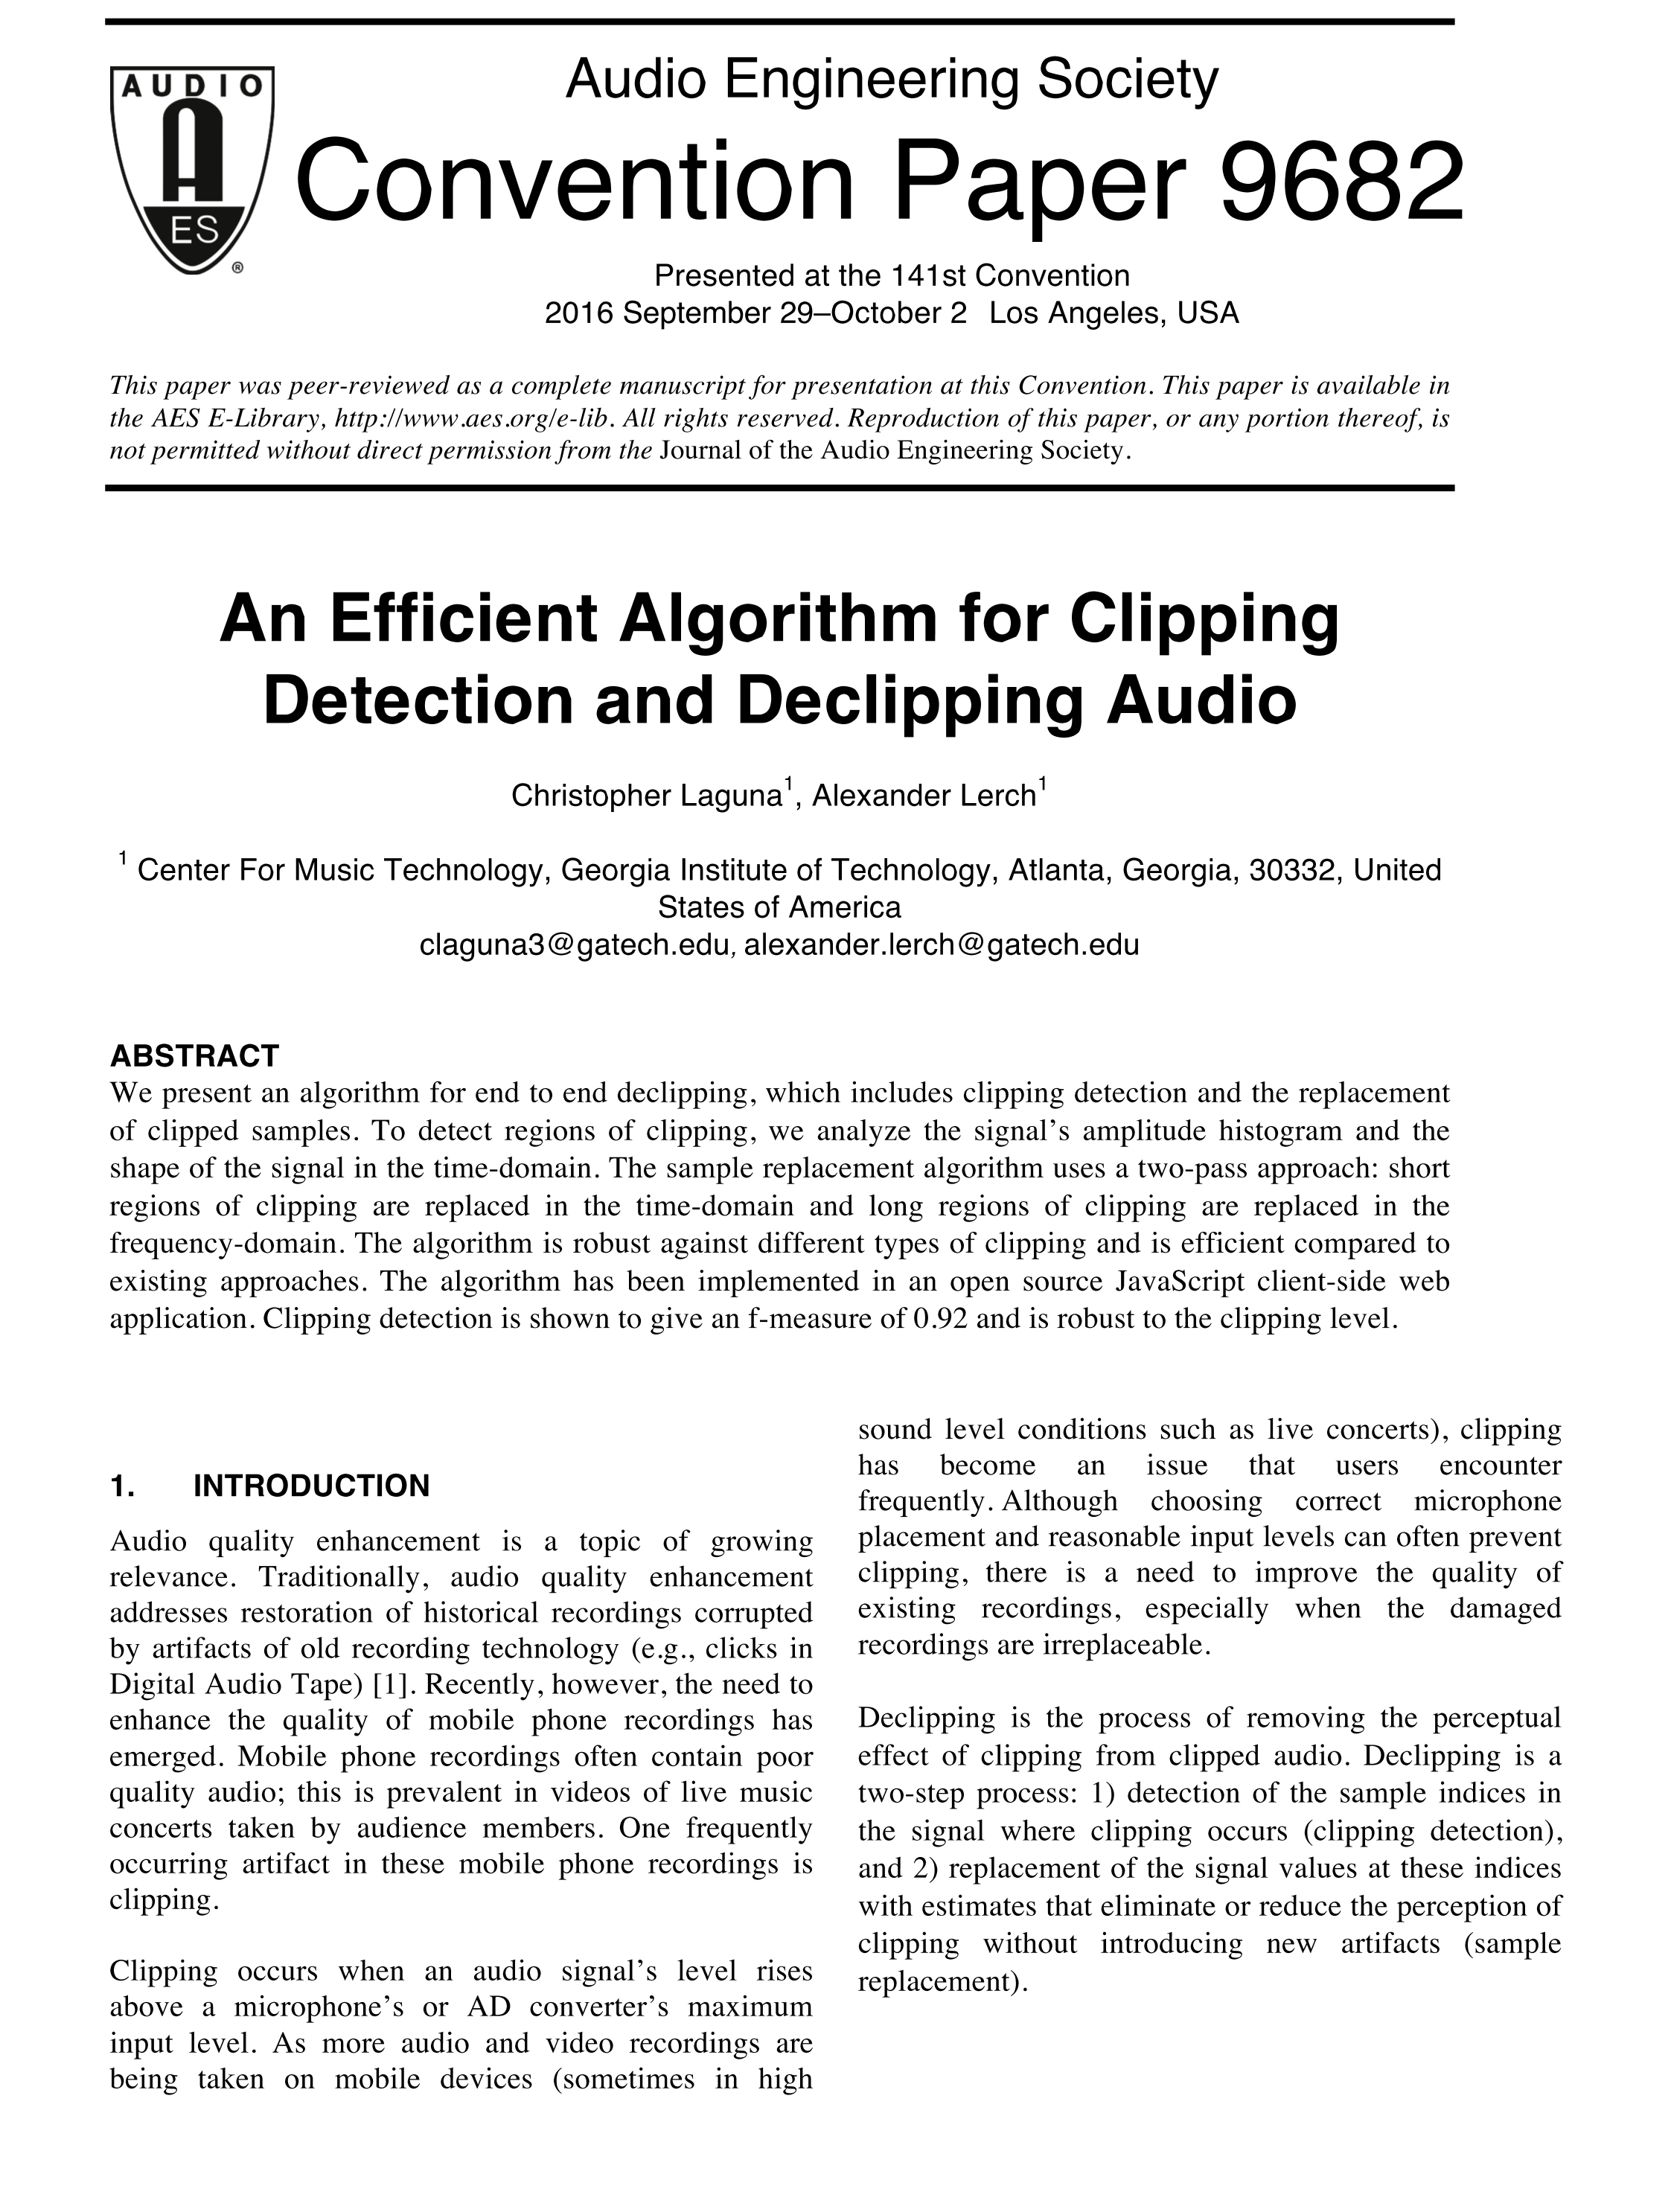 AES E-Library » An Efficient Algorithm for Clipping